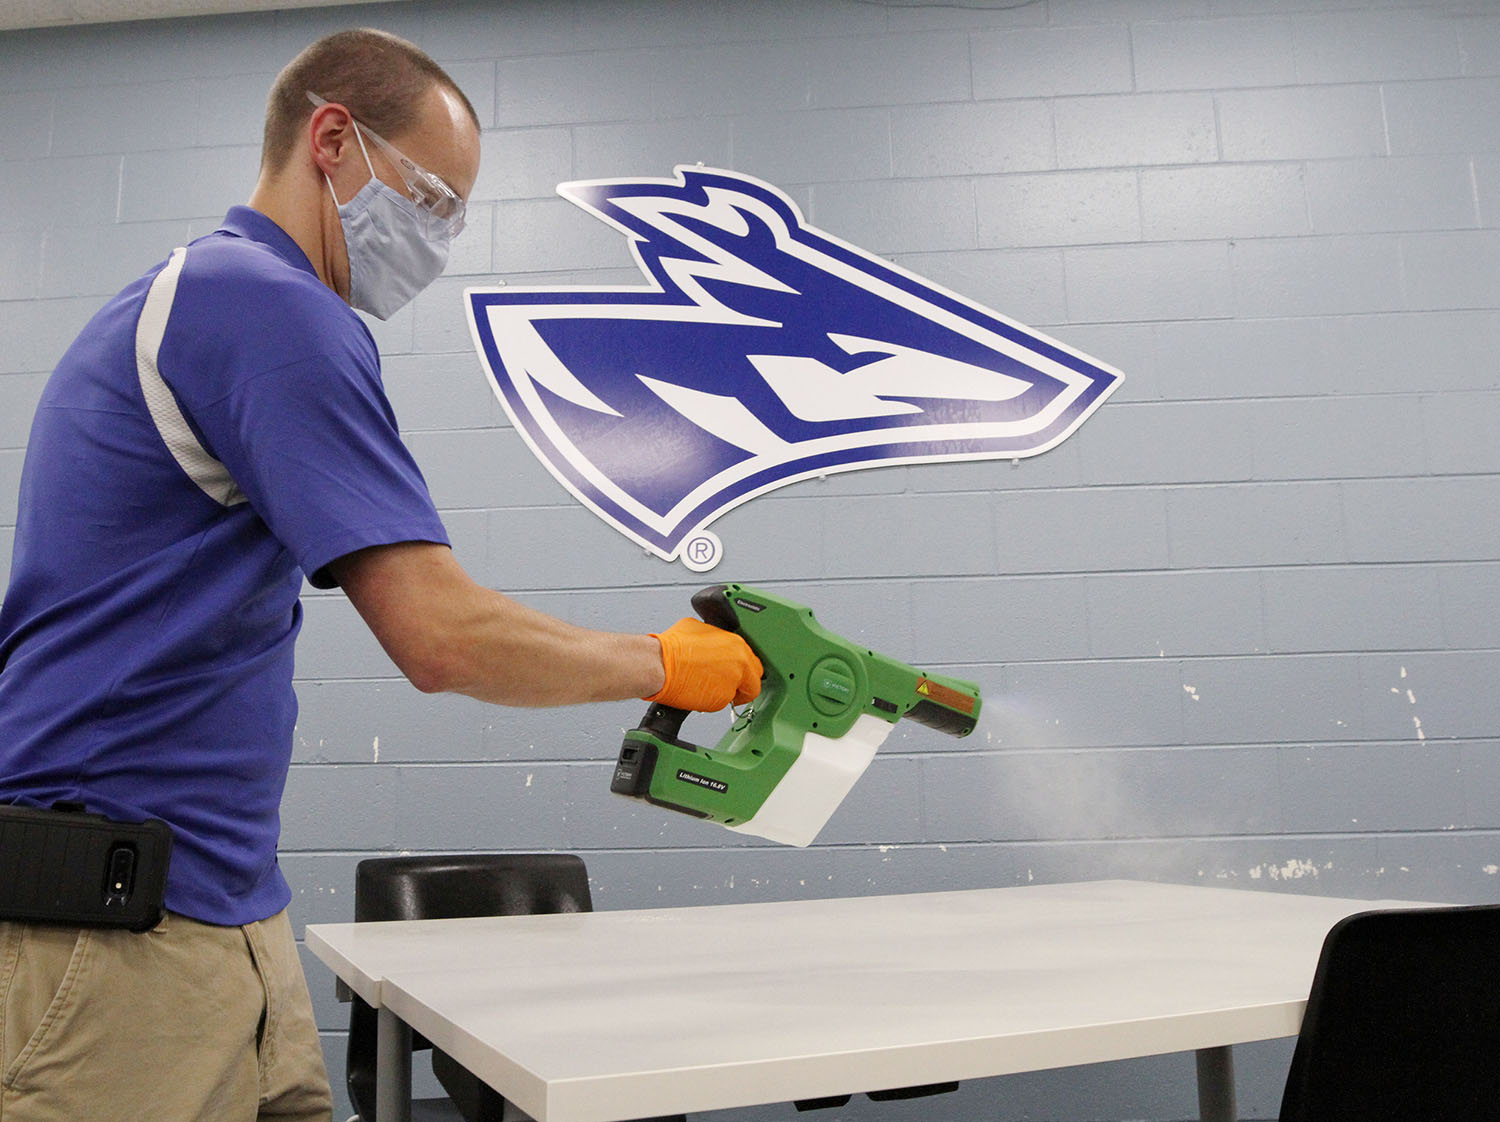 Chris Blocher, lead custodian for UNK's athletic facilities, uses an electrostatic sprayer to disinfect a table. UNK's COVID-19 response plan included enhanced cleaning protocol, as well as several other measures designed to keep the campus community safe.